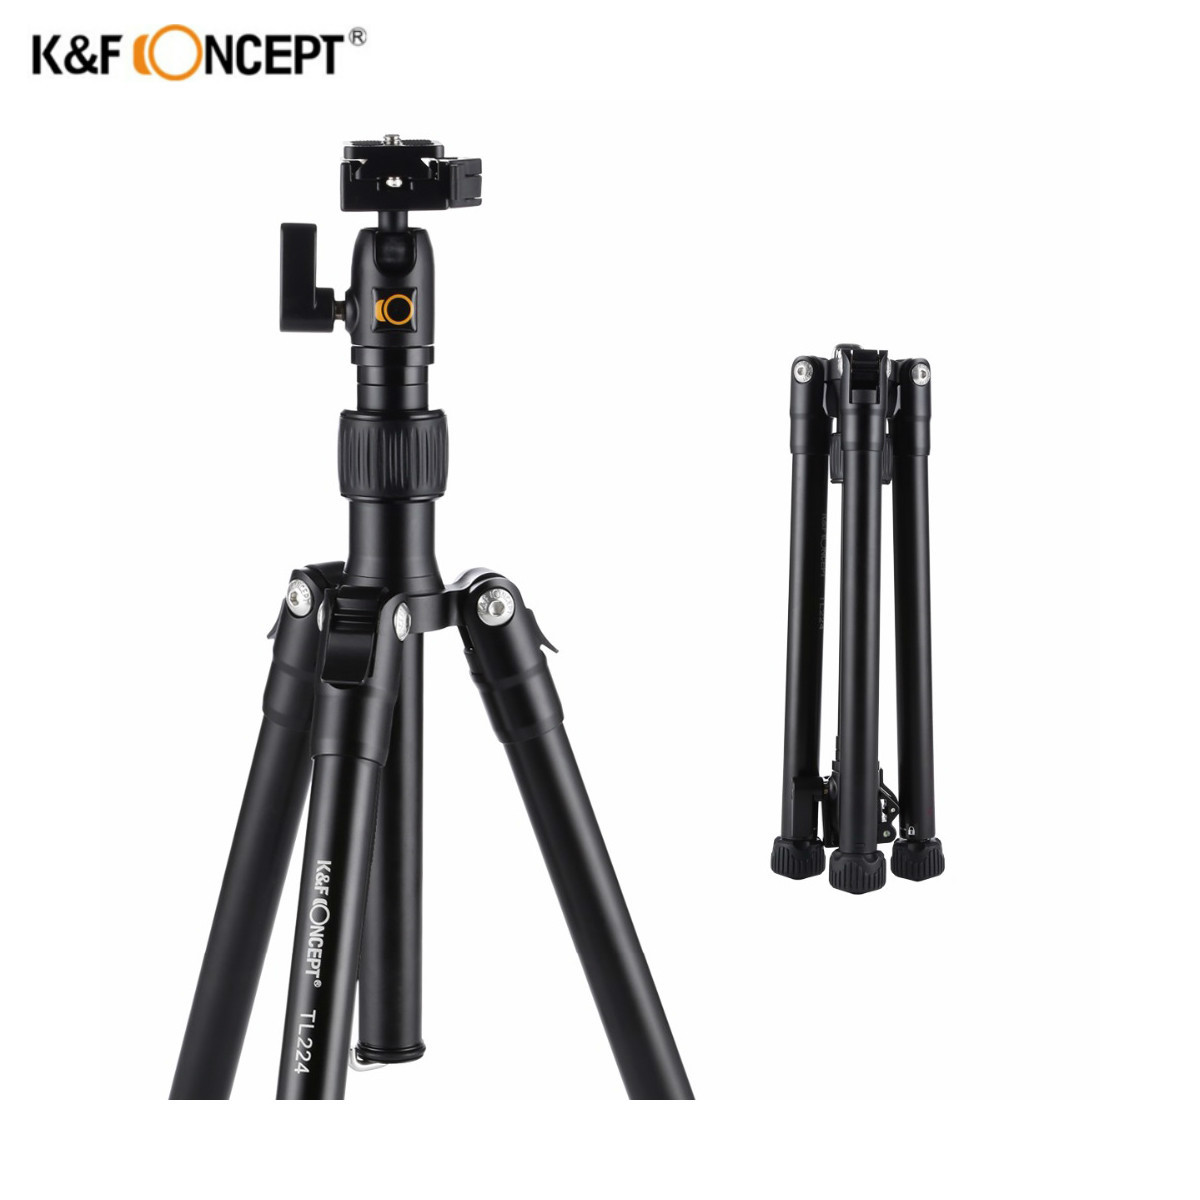 K&F CONCEPT TL224 Professional Lightweight Aluminum Travel Photo Video Tripod Portable Monopod Ball Head Stand For DSLR Camera ashanks professional aluminum camera tripod mini portable monopod with ball head for dslr photography video studio load 10kg